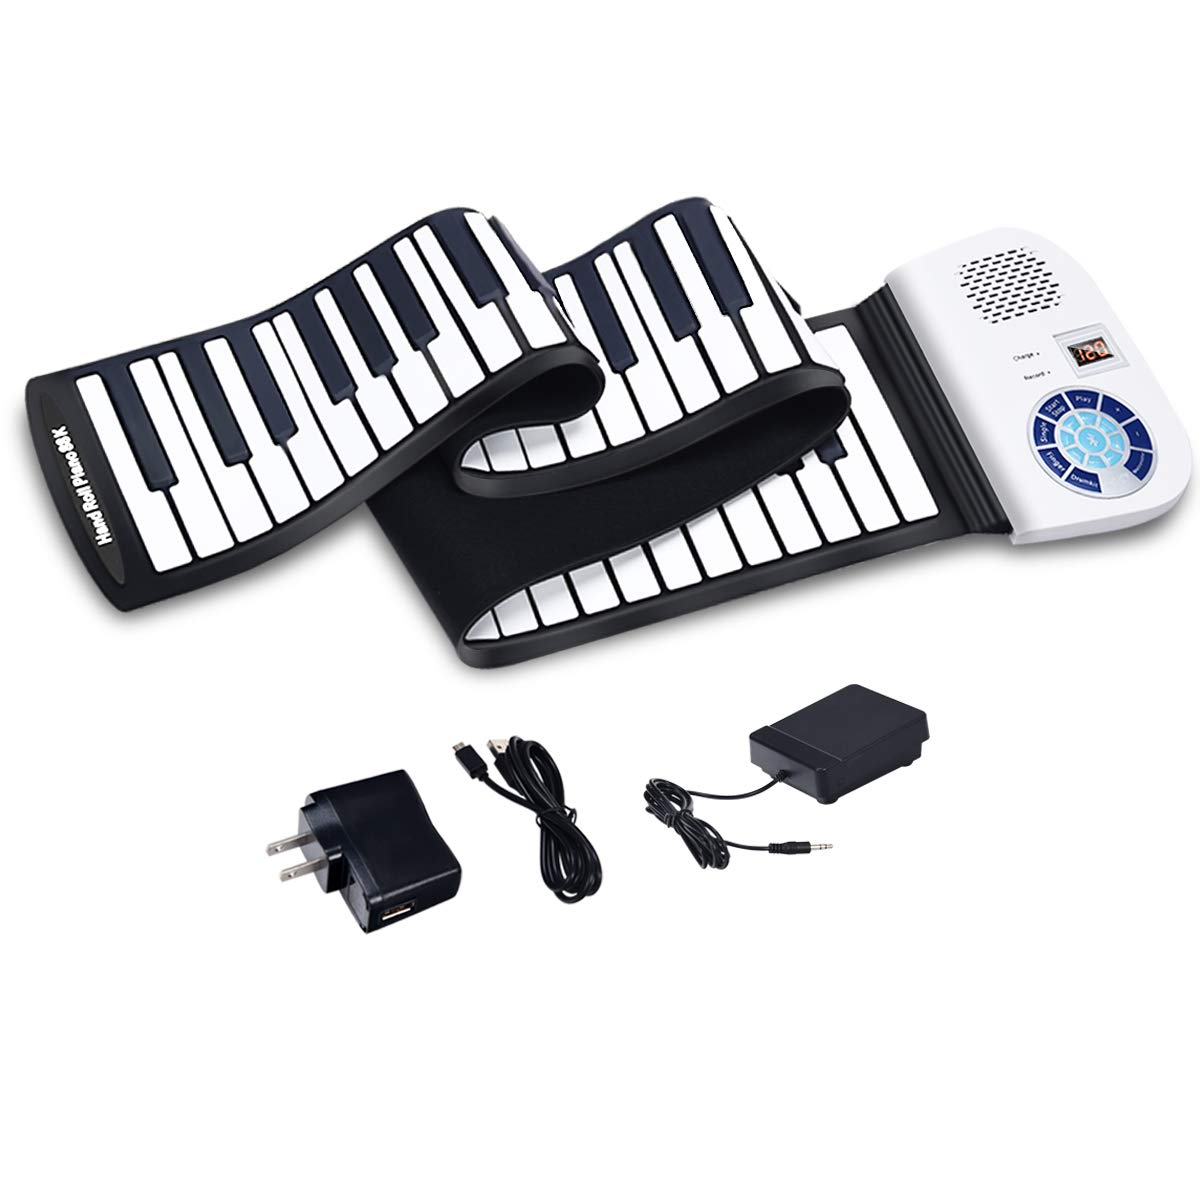 BABY JOY Roll Up Piano, Upgraded Electronic Piano Keyboard, Portable Piano w/Bluetooth, MP3 Headphone USB Input, MIDI OUT, 128 Rhythms, Record, Play, Volume Control (White, 88Keys) by BABY JOY (Image #1)